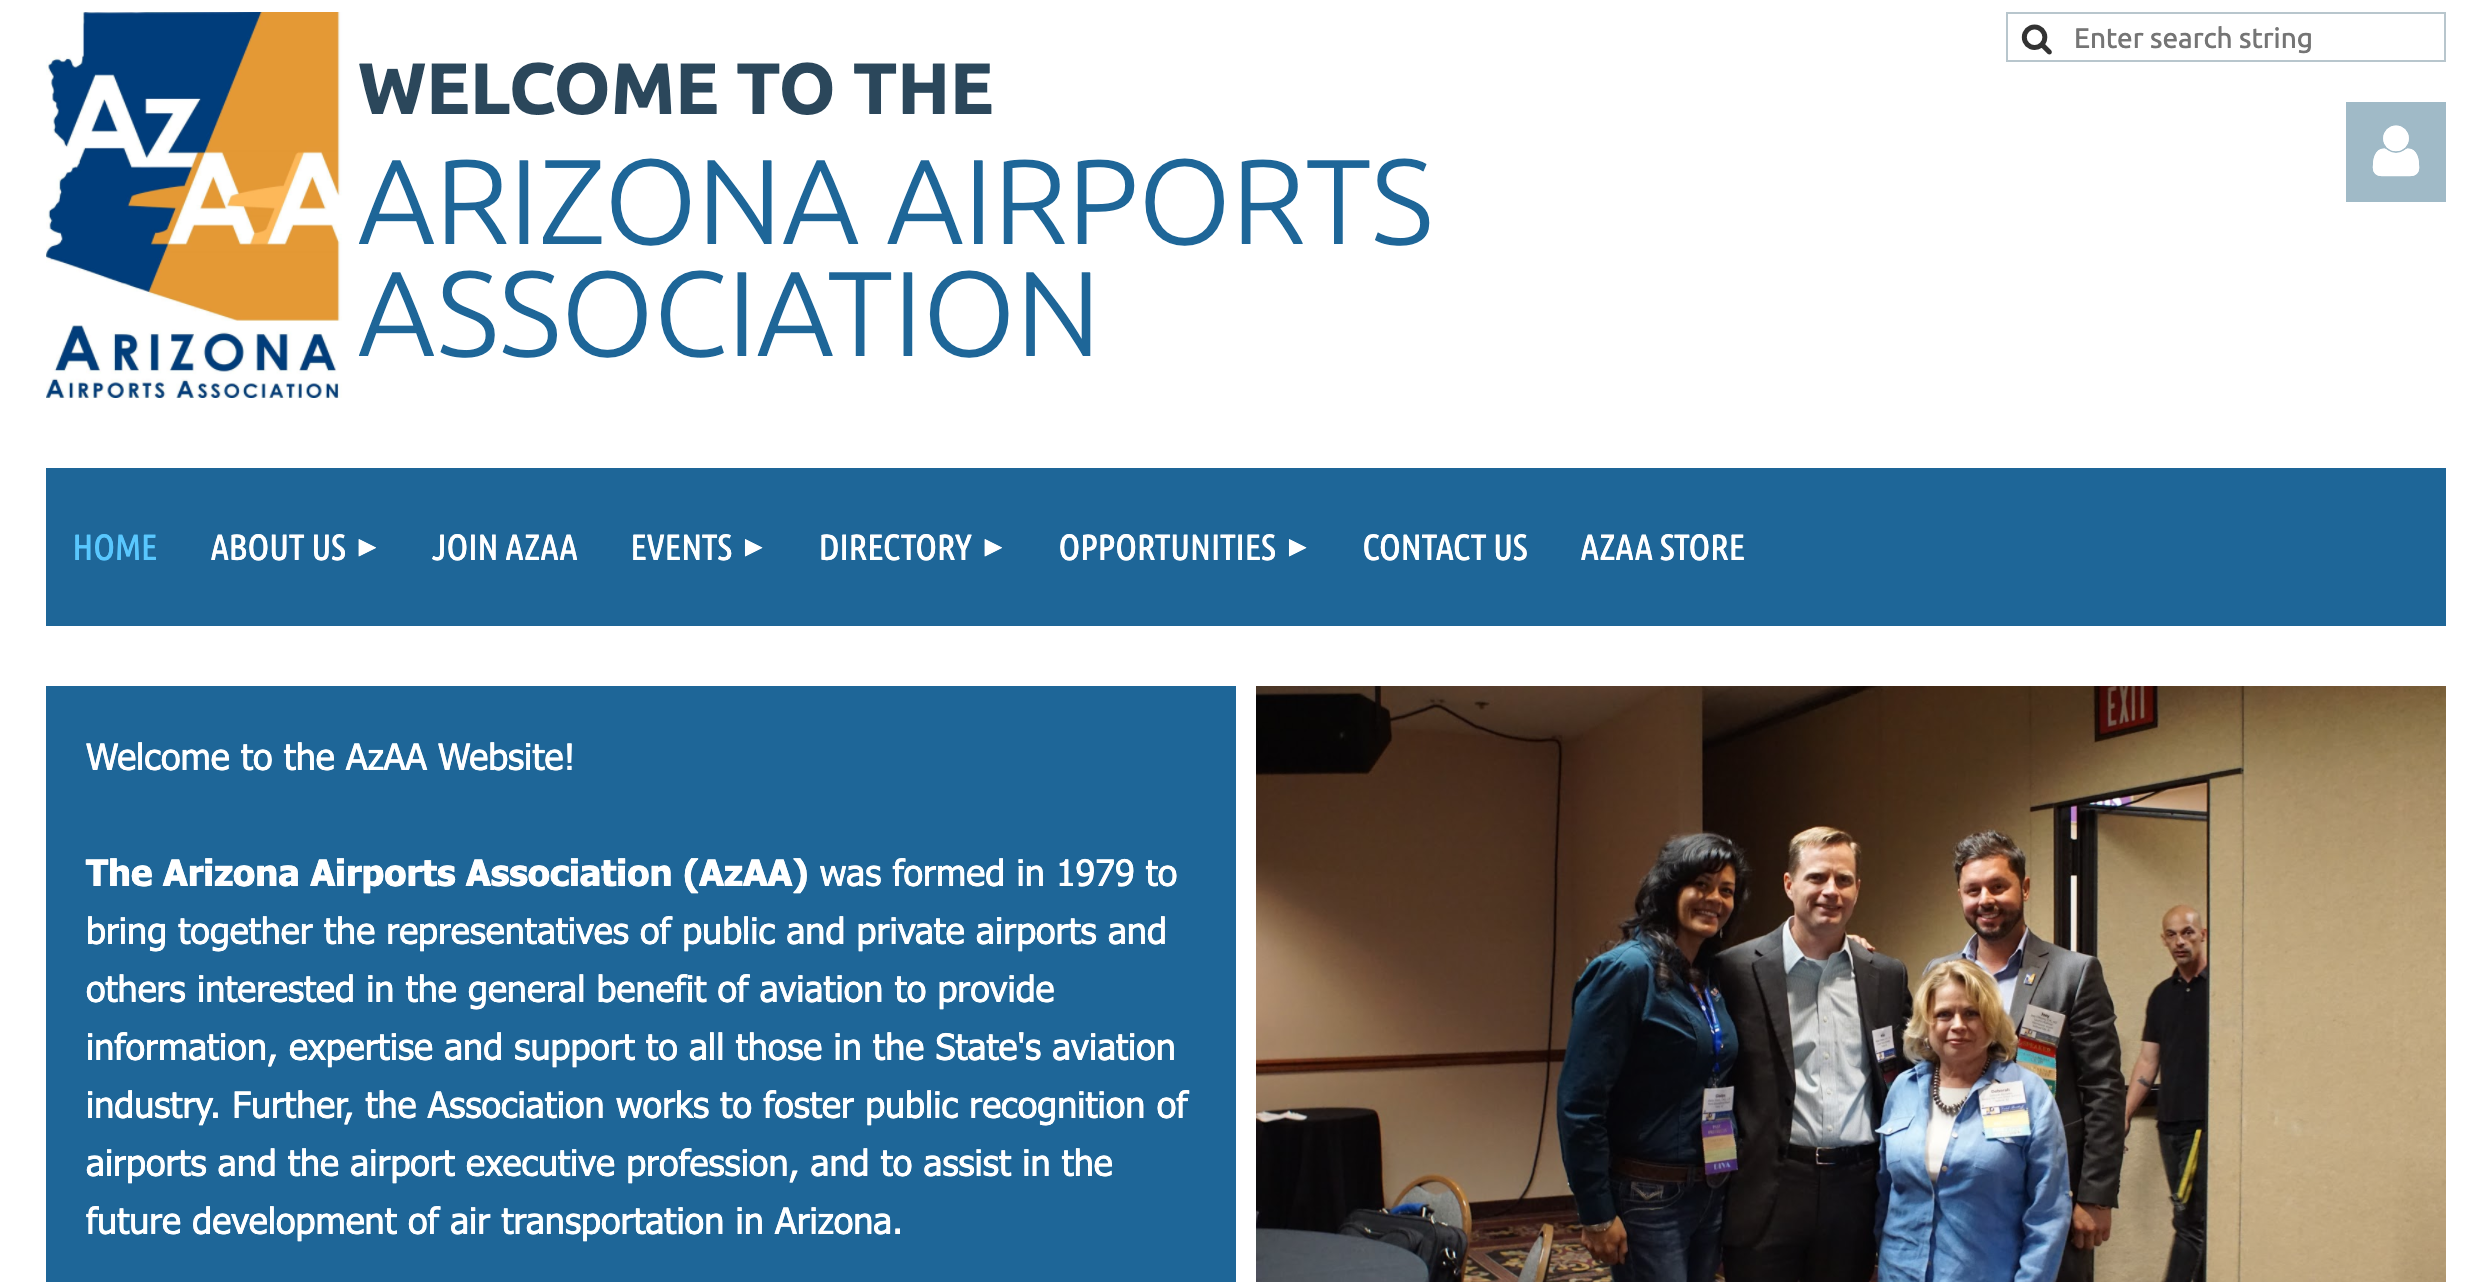 Arizona Airports Association website